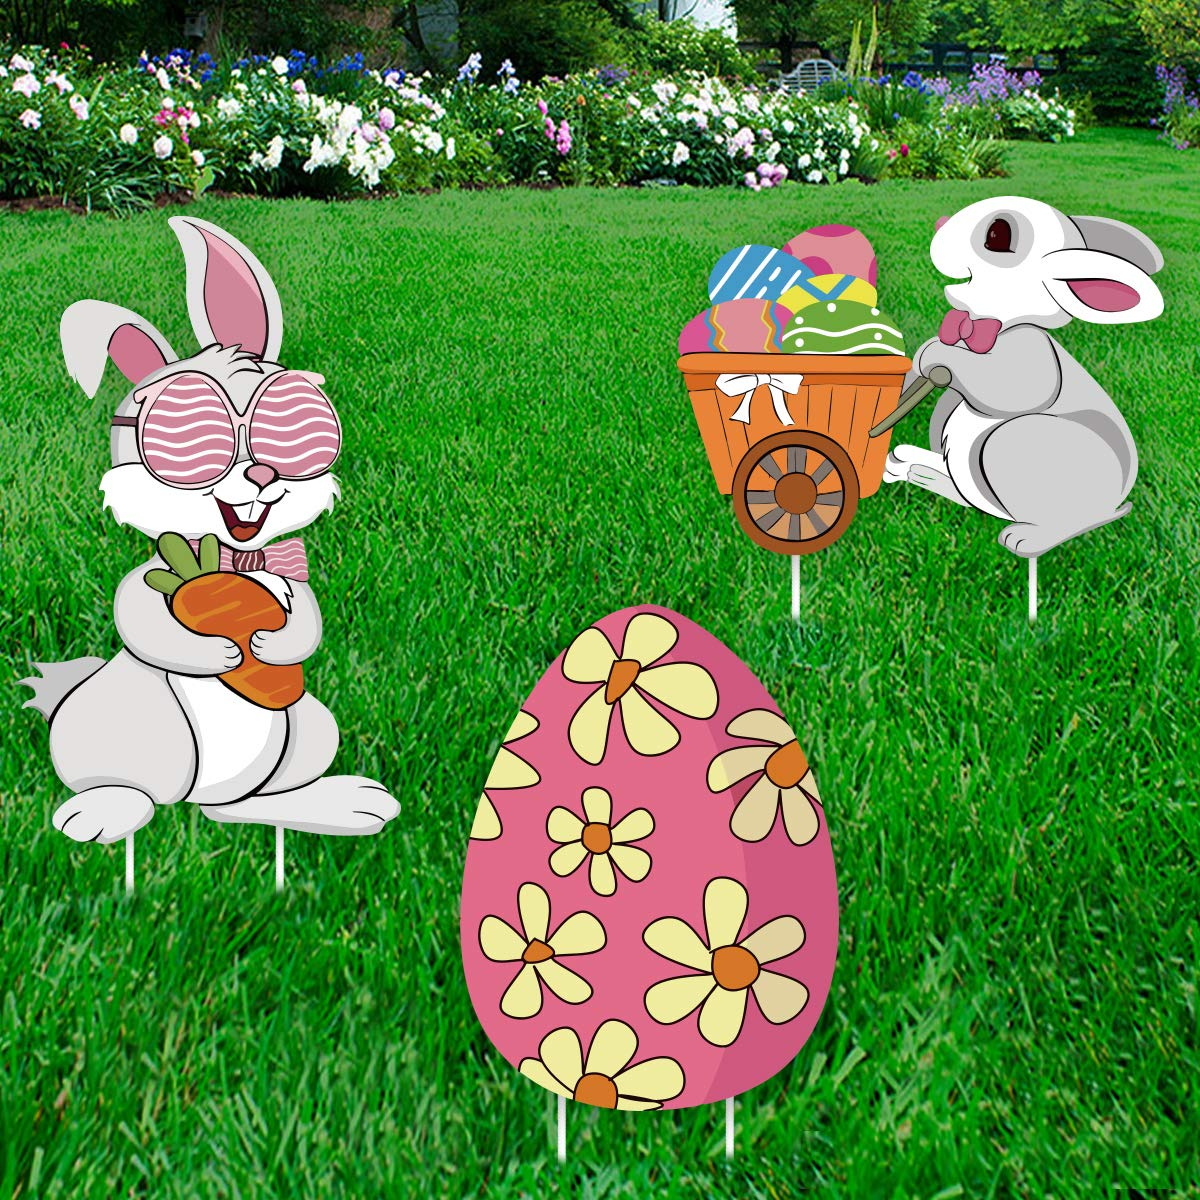 Ivenf Easter Decorations Outdoor, 3ct Bunny Eggs Corrugate Yard Signs with Stake, Garden Lawn Rabbit Eggs Plastic Party Supplies Decor